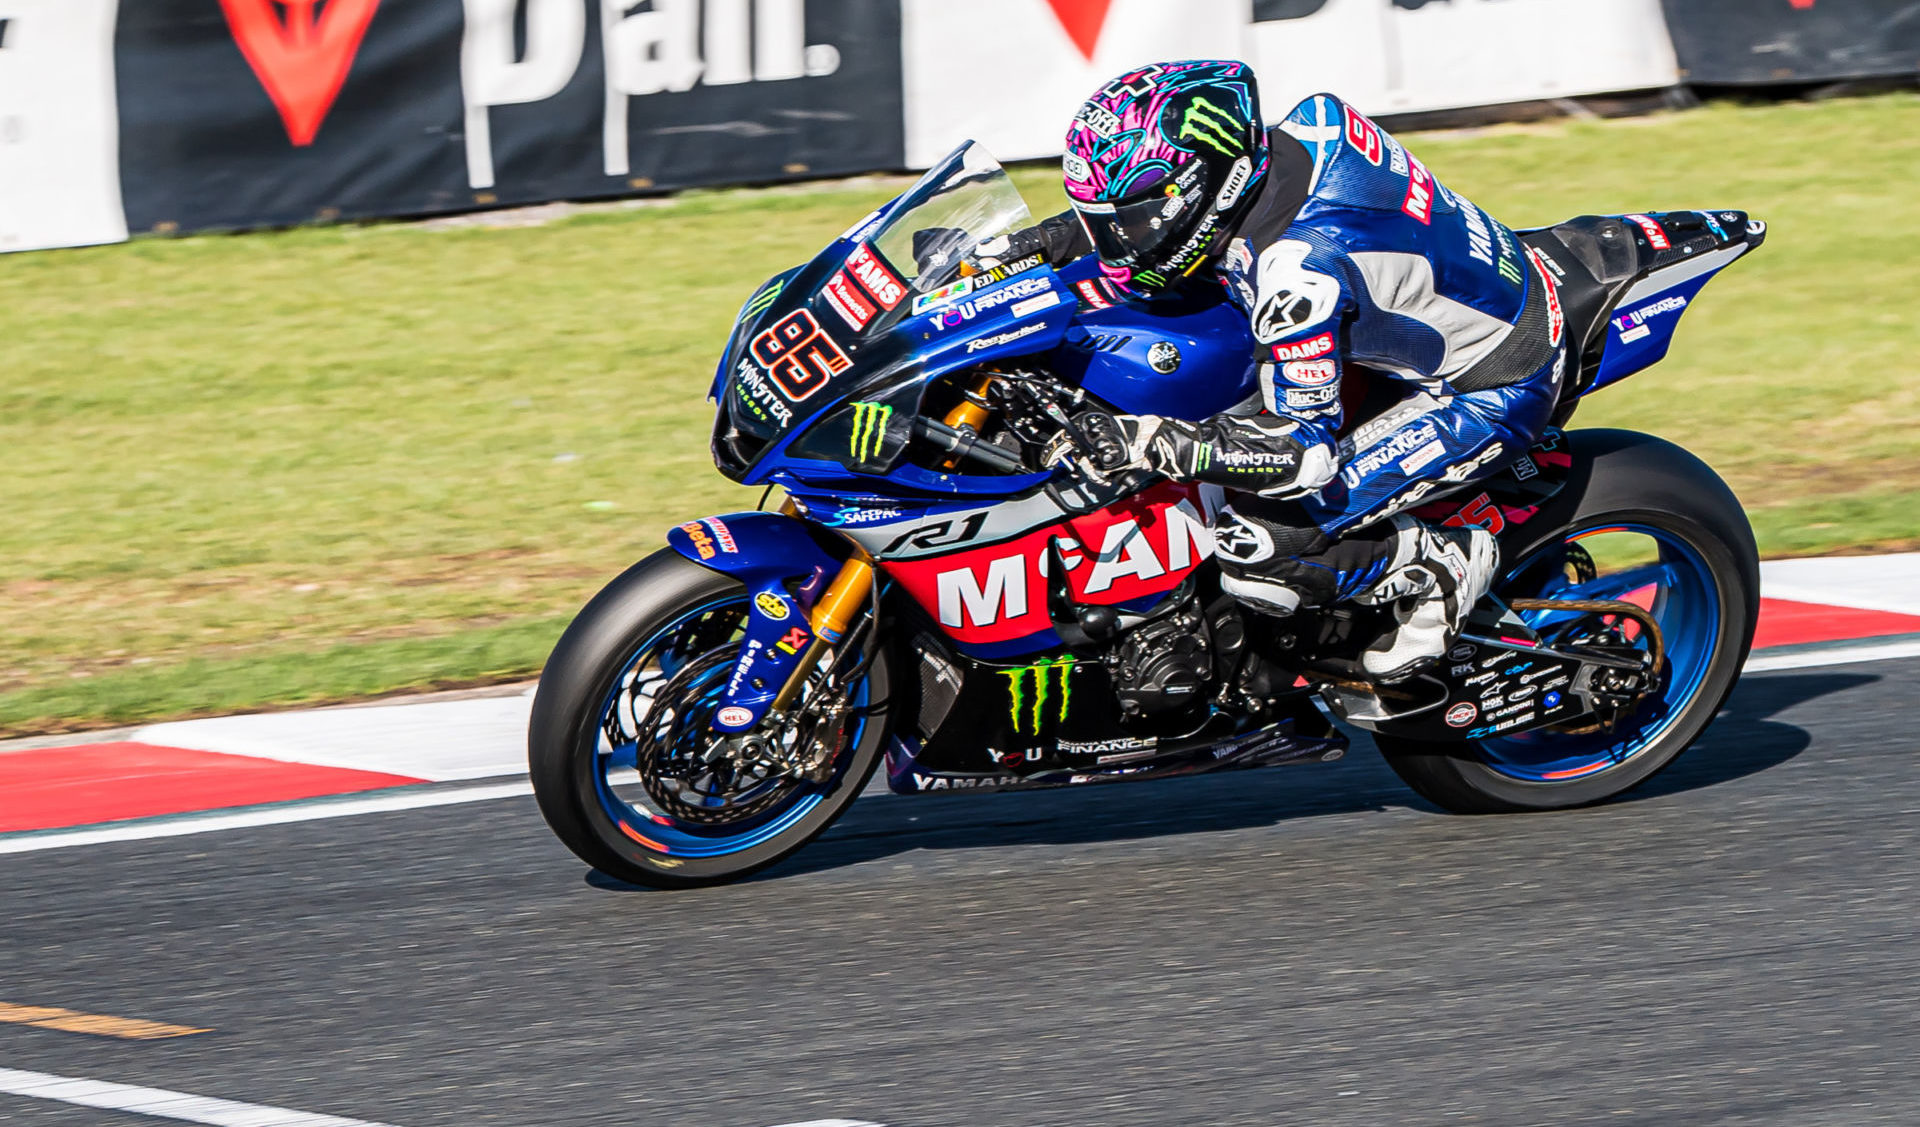 Tarran Mackenzie (95) was fastest in British Superbike practice Friday at Donington Park. Photo by Barry Clay.